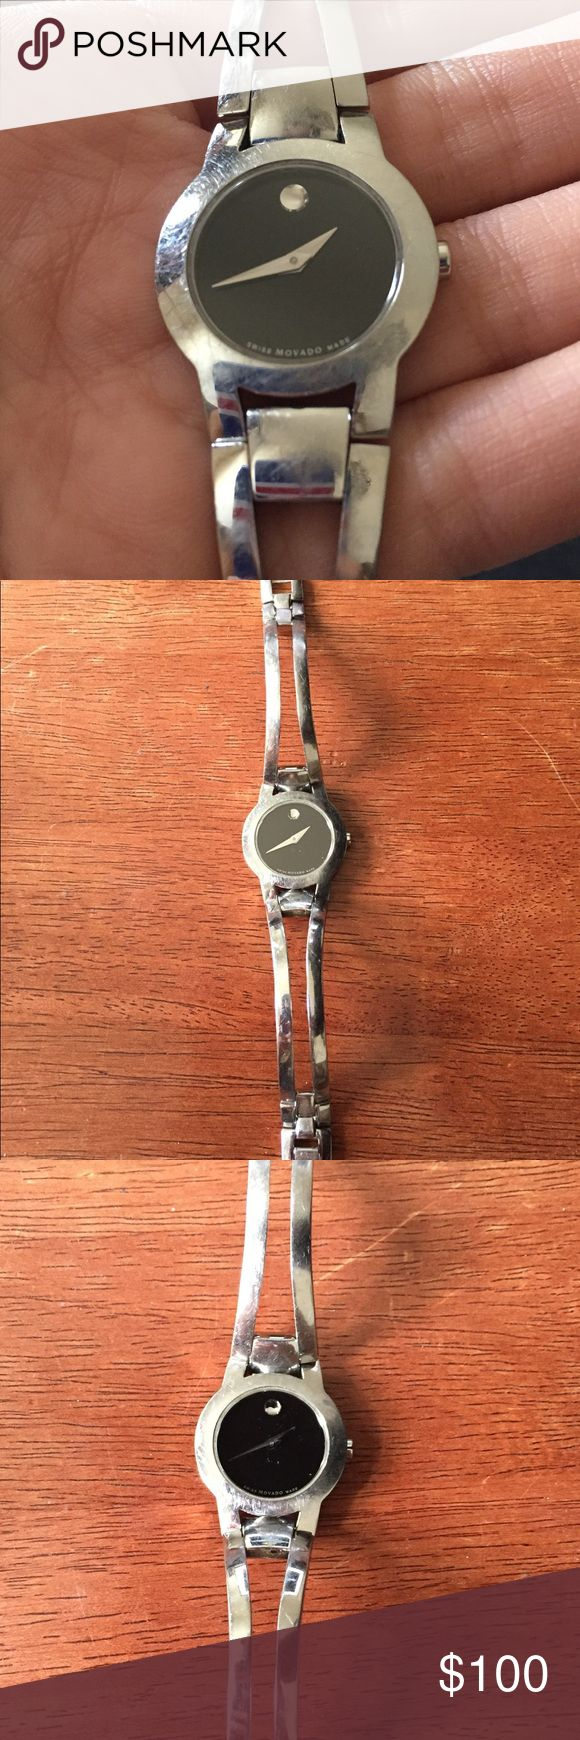 Movado watch women's Small Movado watch. Amarosa model. Stainless steel. Worn. Has scuffing and scratches on band from normal wear. Sapphire crystal face has no scratches. Needs new battery. Resized to fit small wrist. No extra links. No box. Movado Accessories Watches